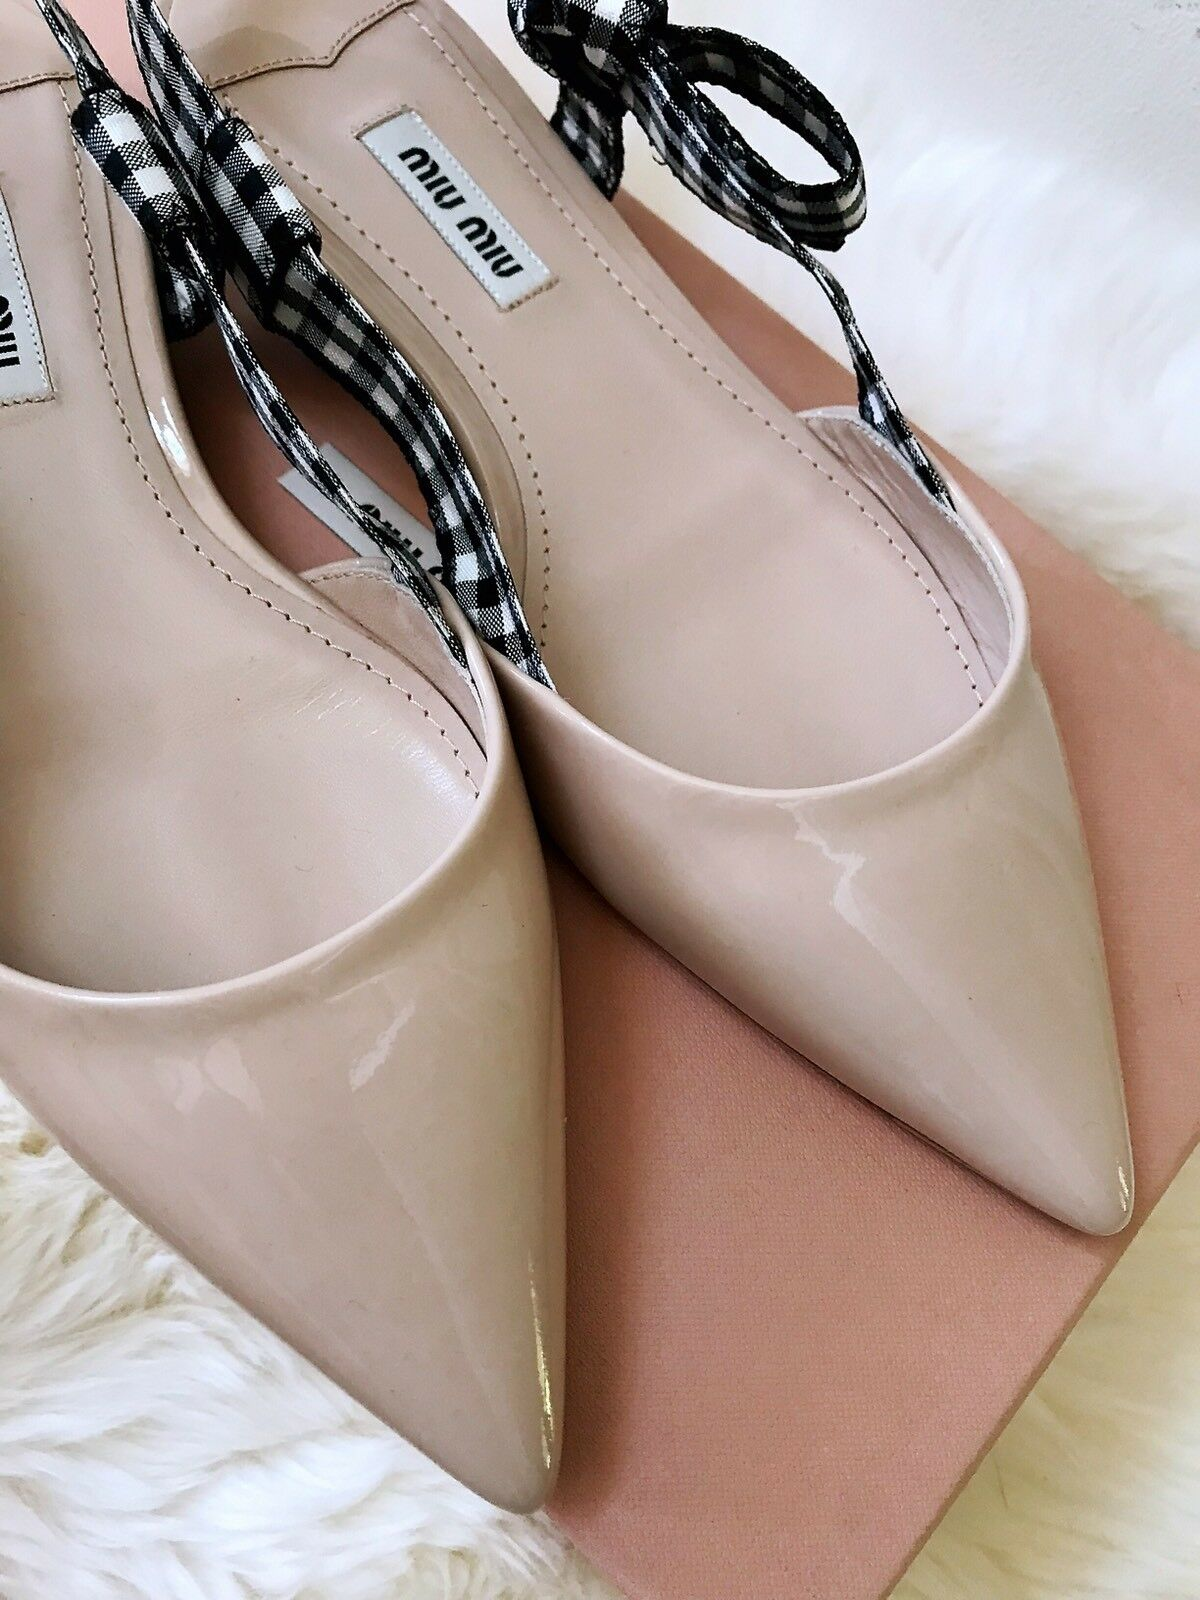 Miu Miu Toe Pump Sambra Slingback Flat shoes 37